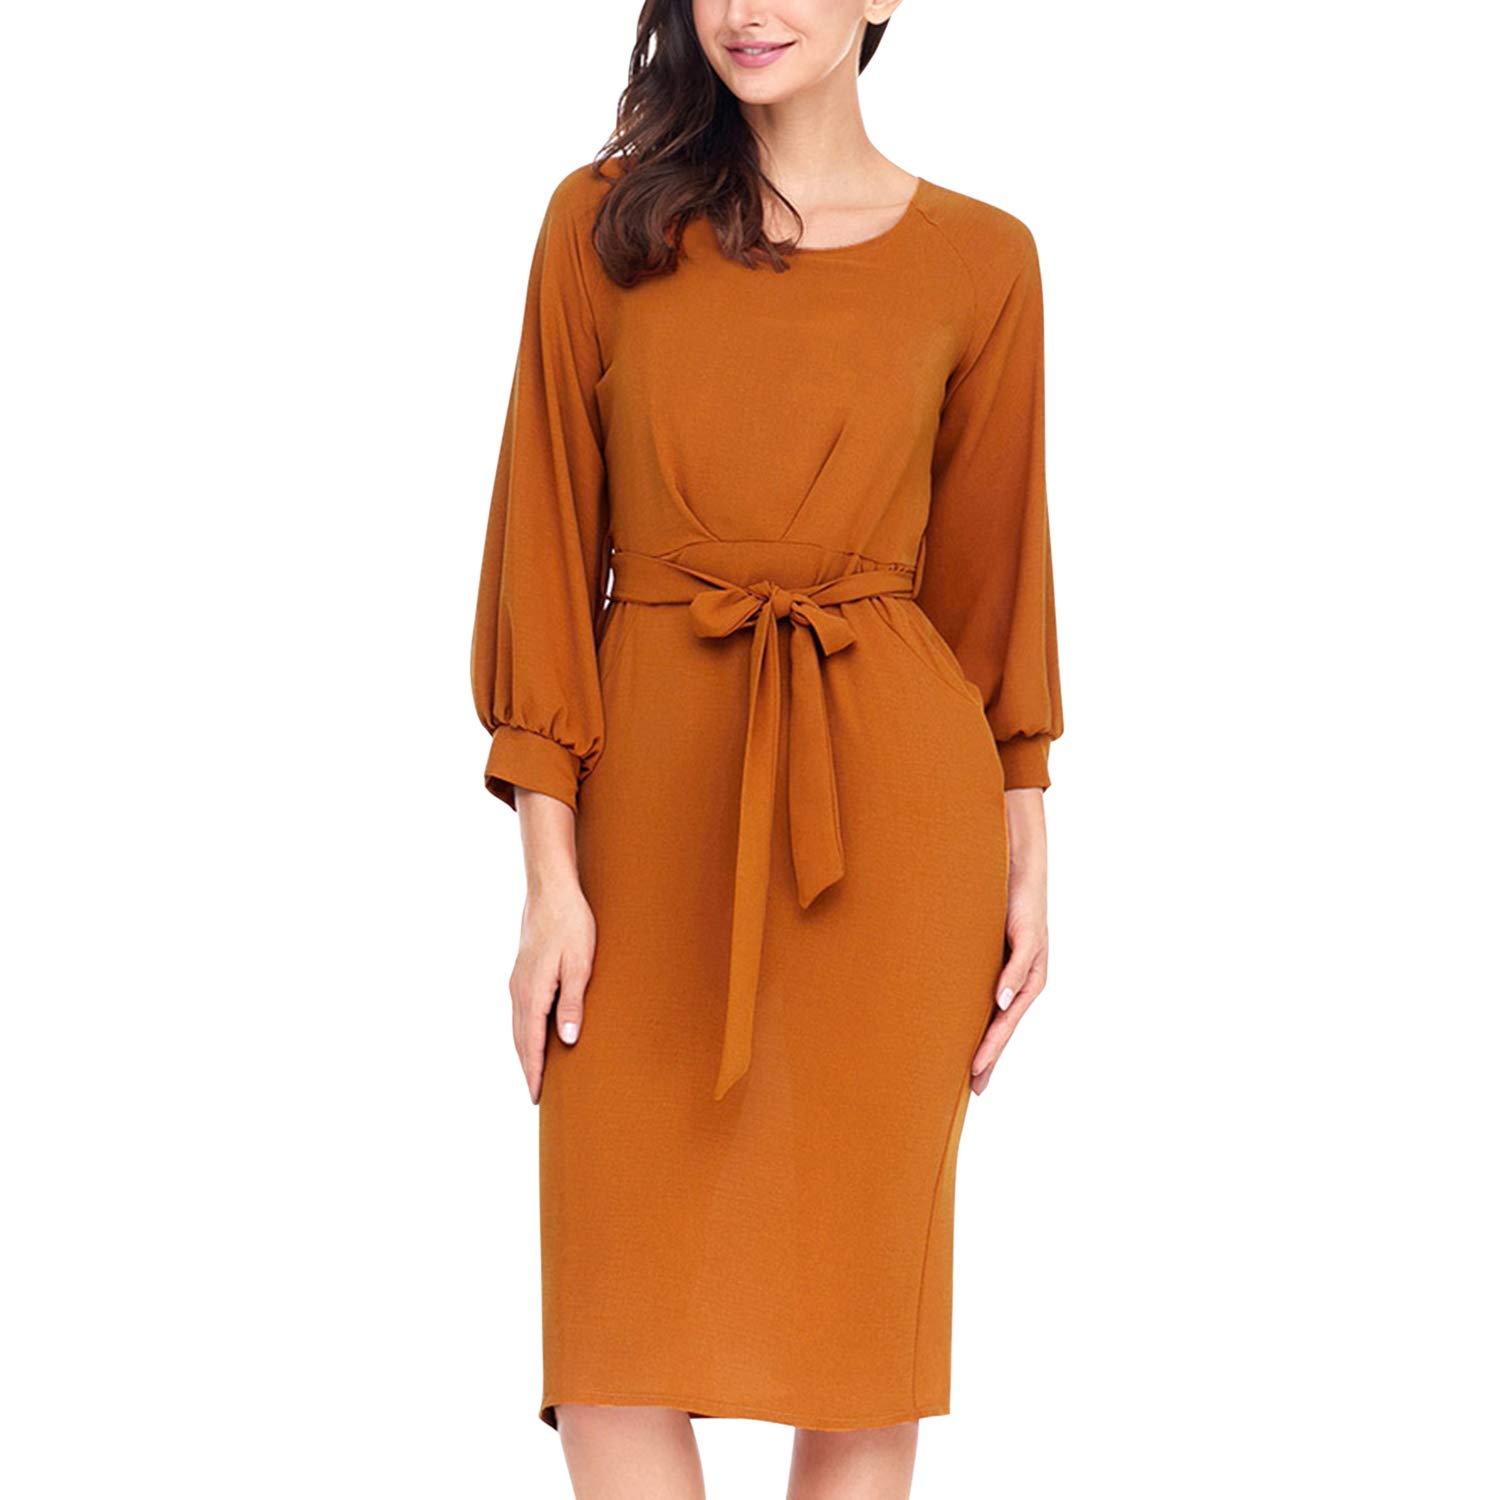 Lisli Womens Round Neck Pencio Dress Puff Sleeve Belted Skirt with Pockets